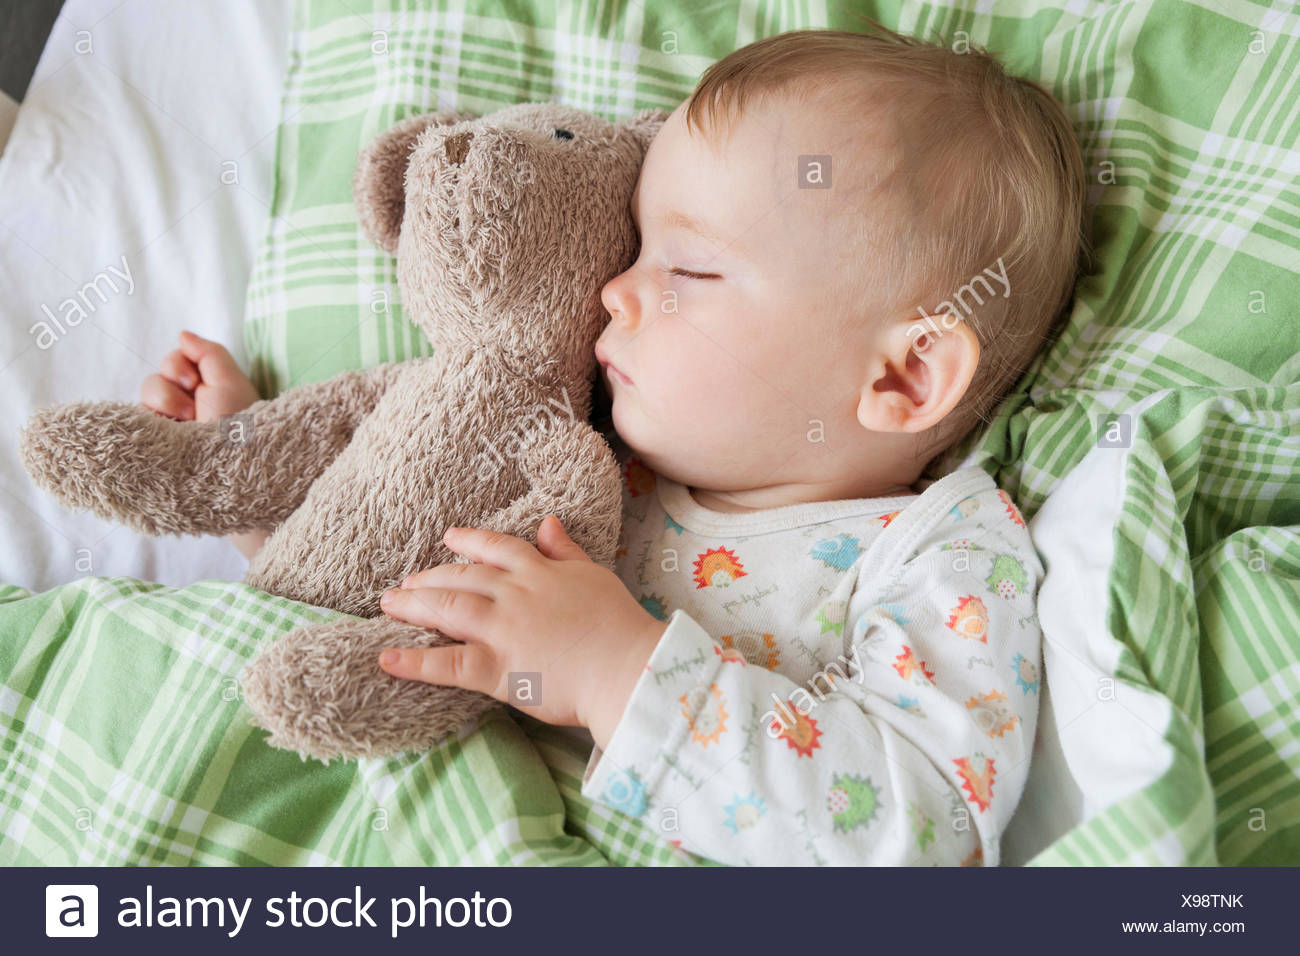 bbe3b3d40 Overhead view of baby boy asleep on bed holding teddy bear - Stock Image